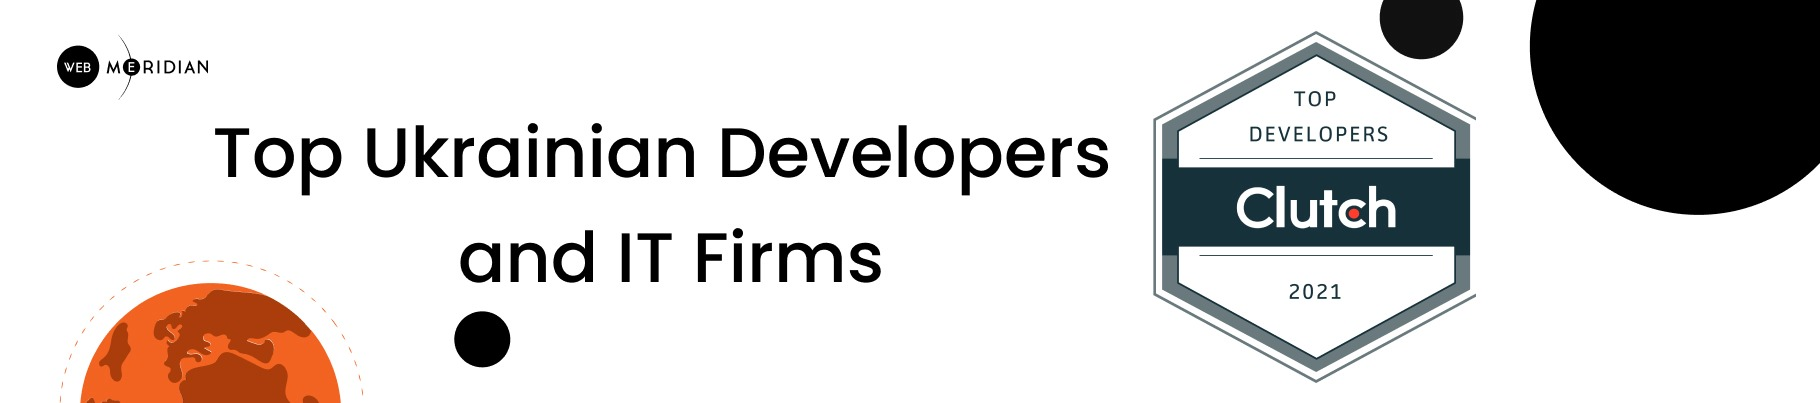 Top Ukrainian Developers and IT Firms